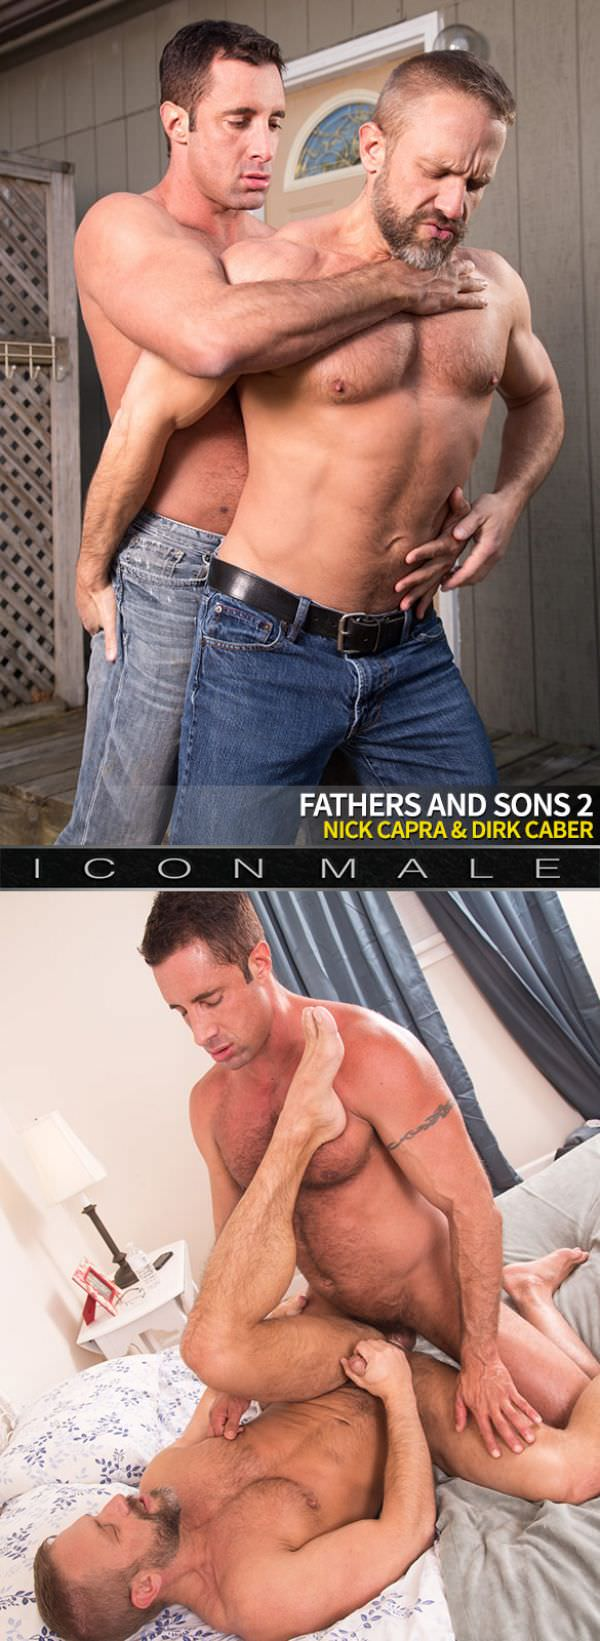 IconMale Fathers and Sons 2 Nick Capra fucks Dirk Caber